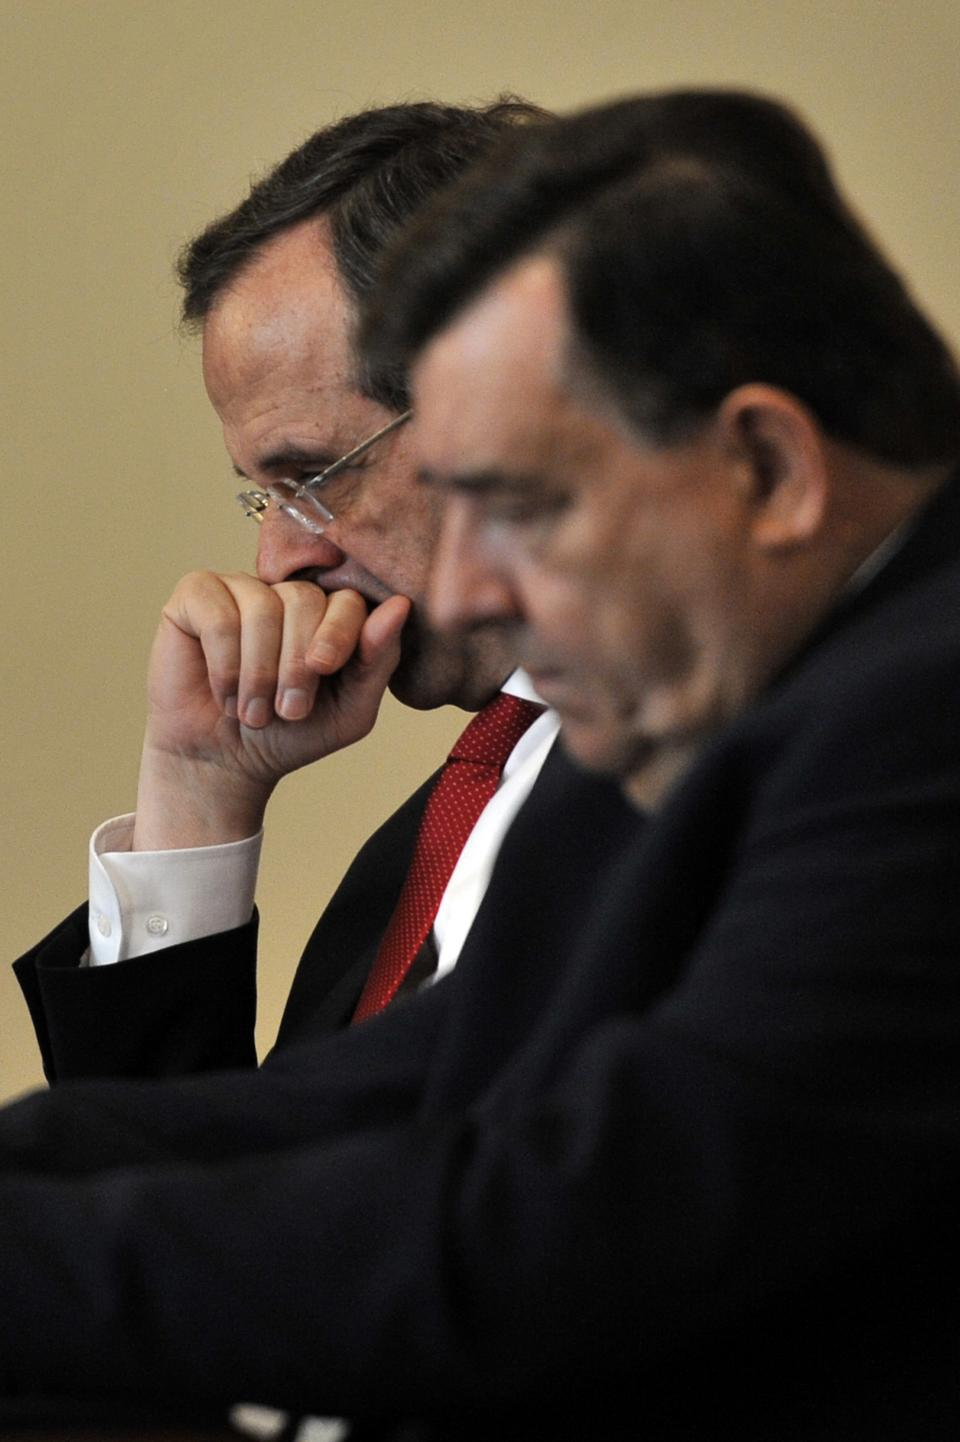 Greece's conservative leader Antonis Samaras, left and right-wing LAOS party leader Giorgos Karatzaferis attend a meeting in Athens on Friday May 27, 2011.Greek political leaders held crisis meeting to find consensus on austerity measures. (AP Photo/Aris Messinis,pool)